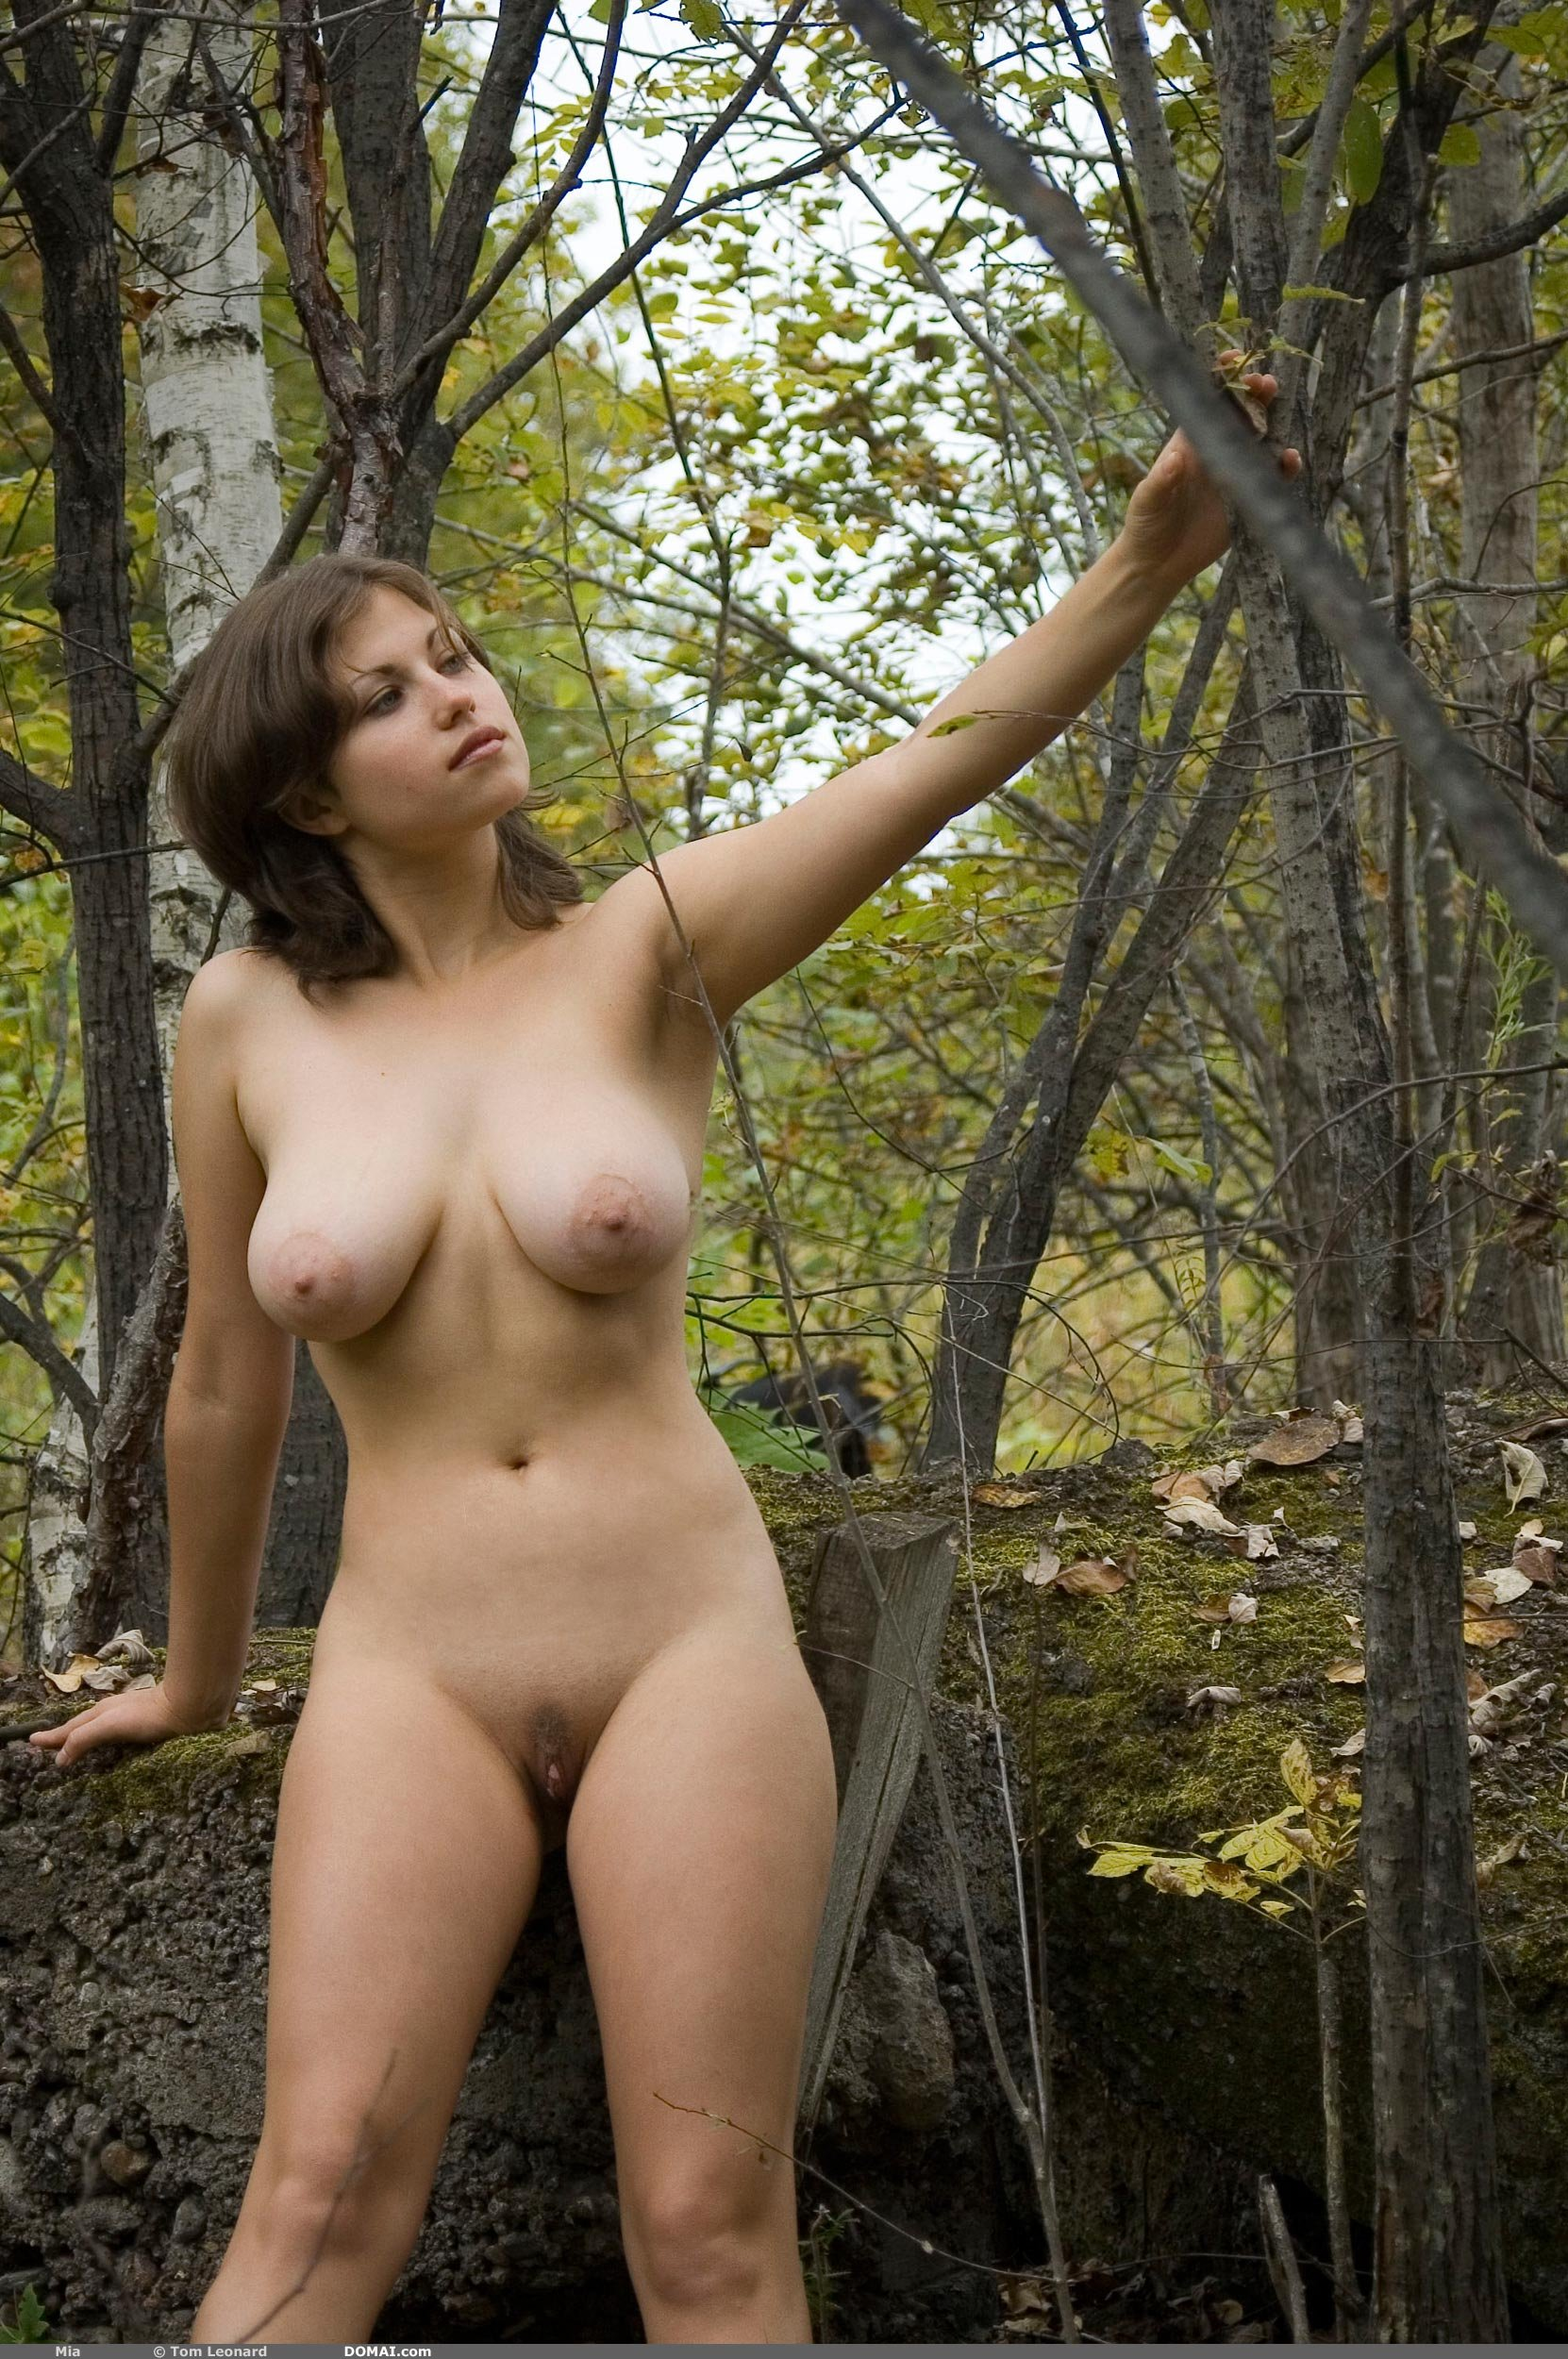 Nude girl forest pic exposed scene